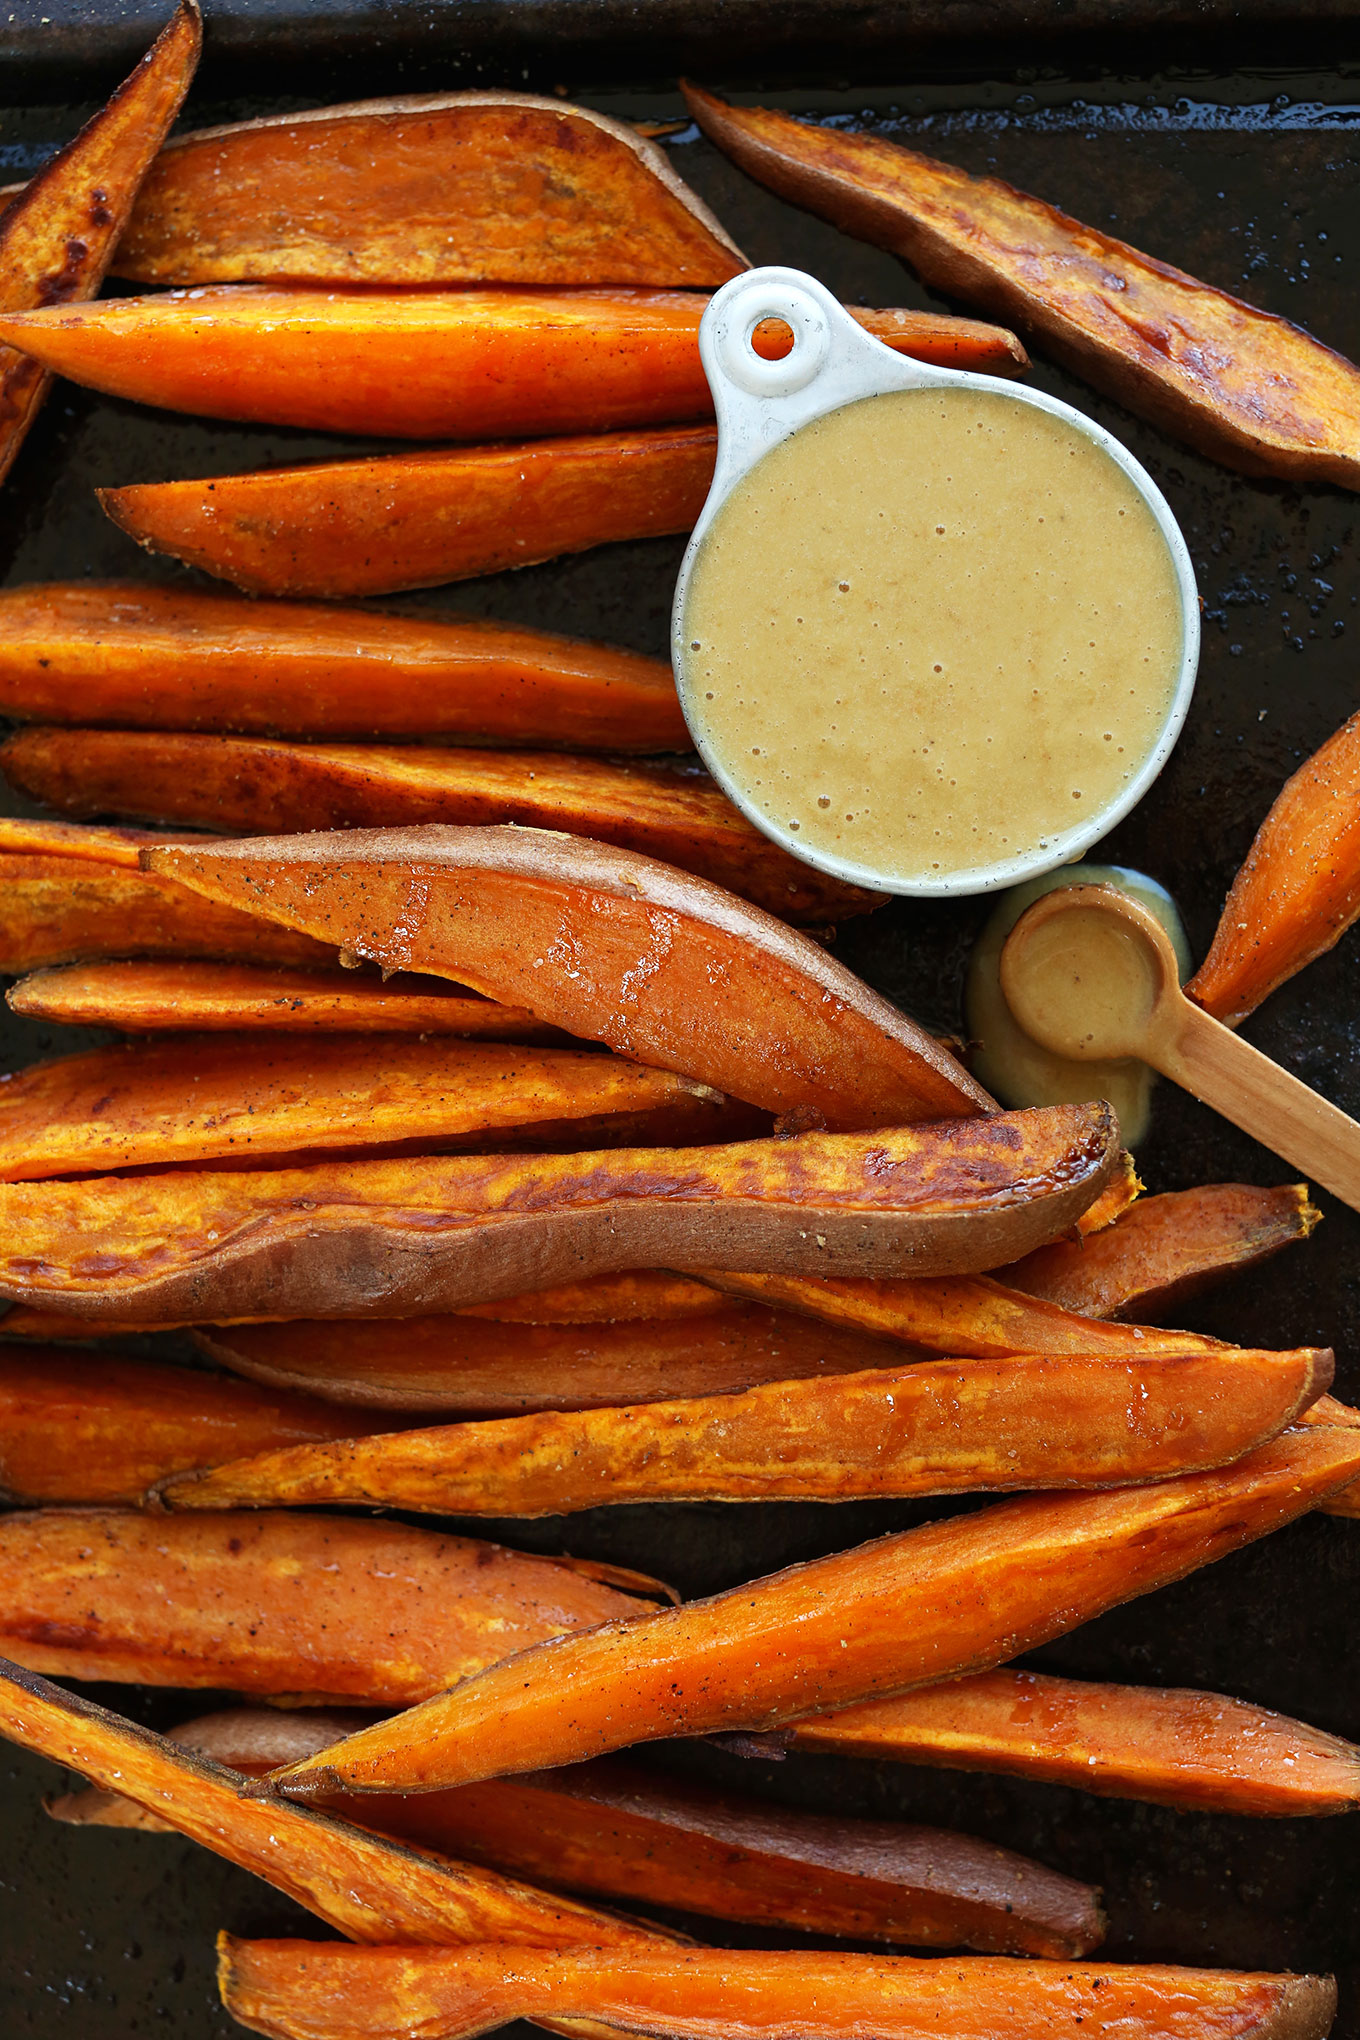 Perfectly browned Savory Sweet Potato Wedges with a side of vegan No-Honey Mustard Dipping Sauce